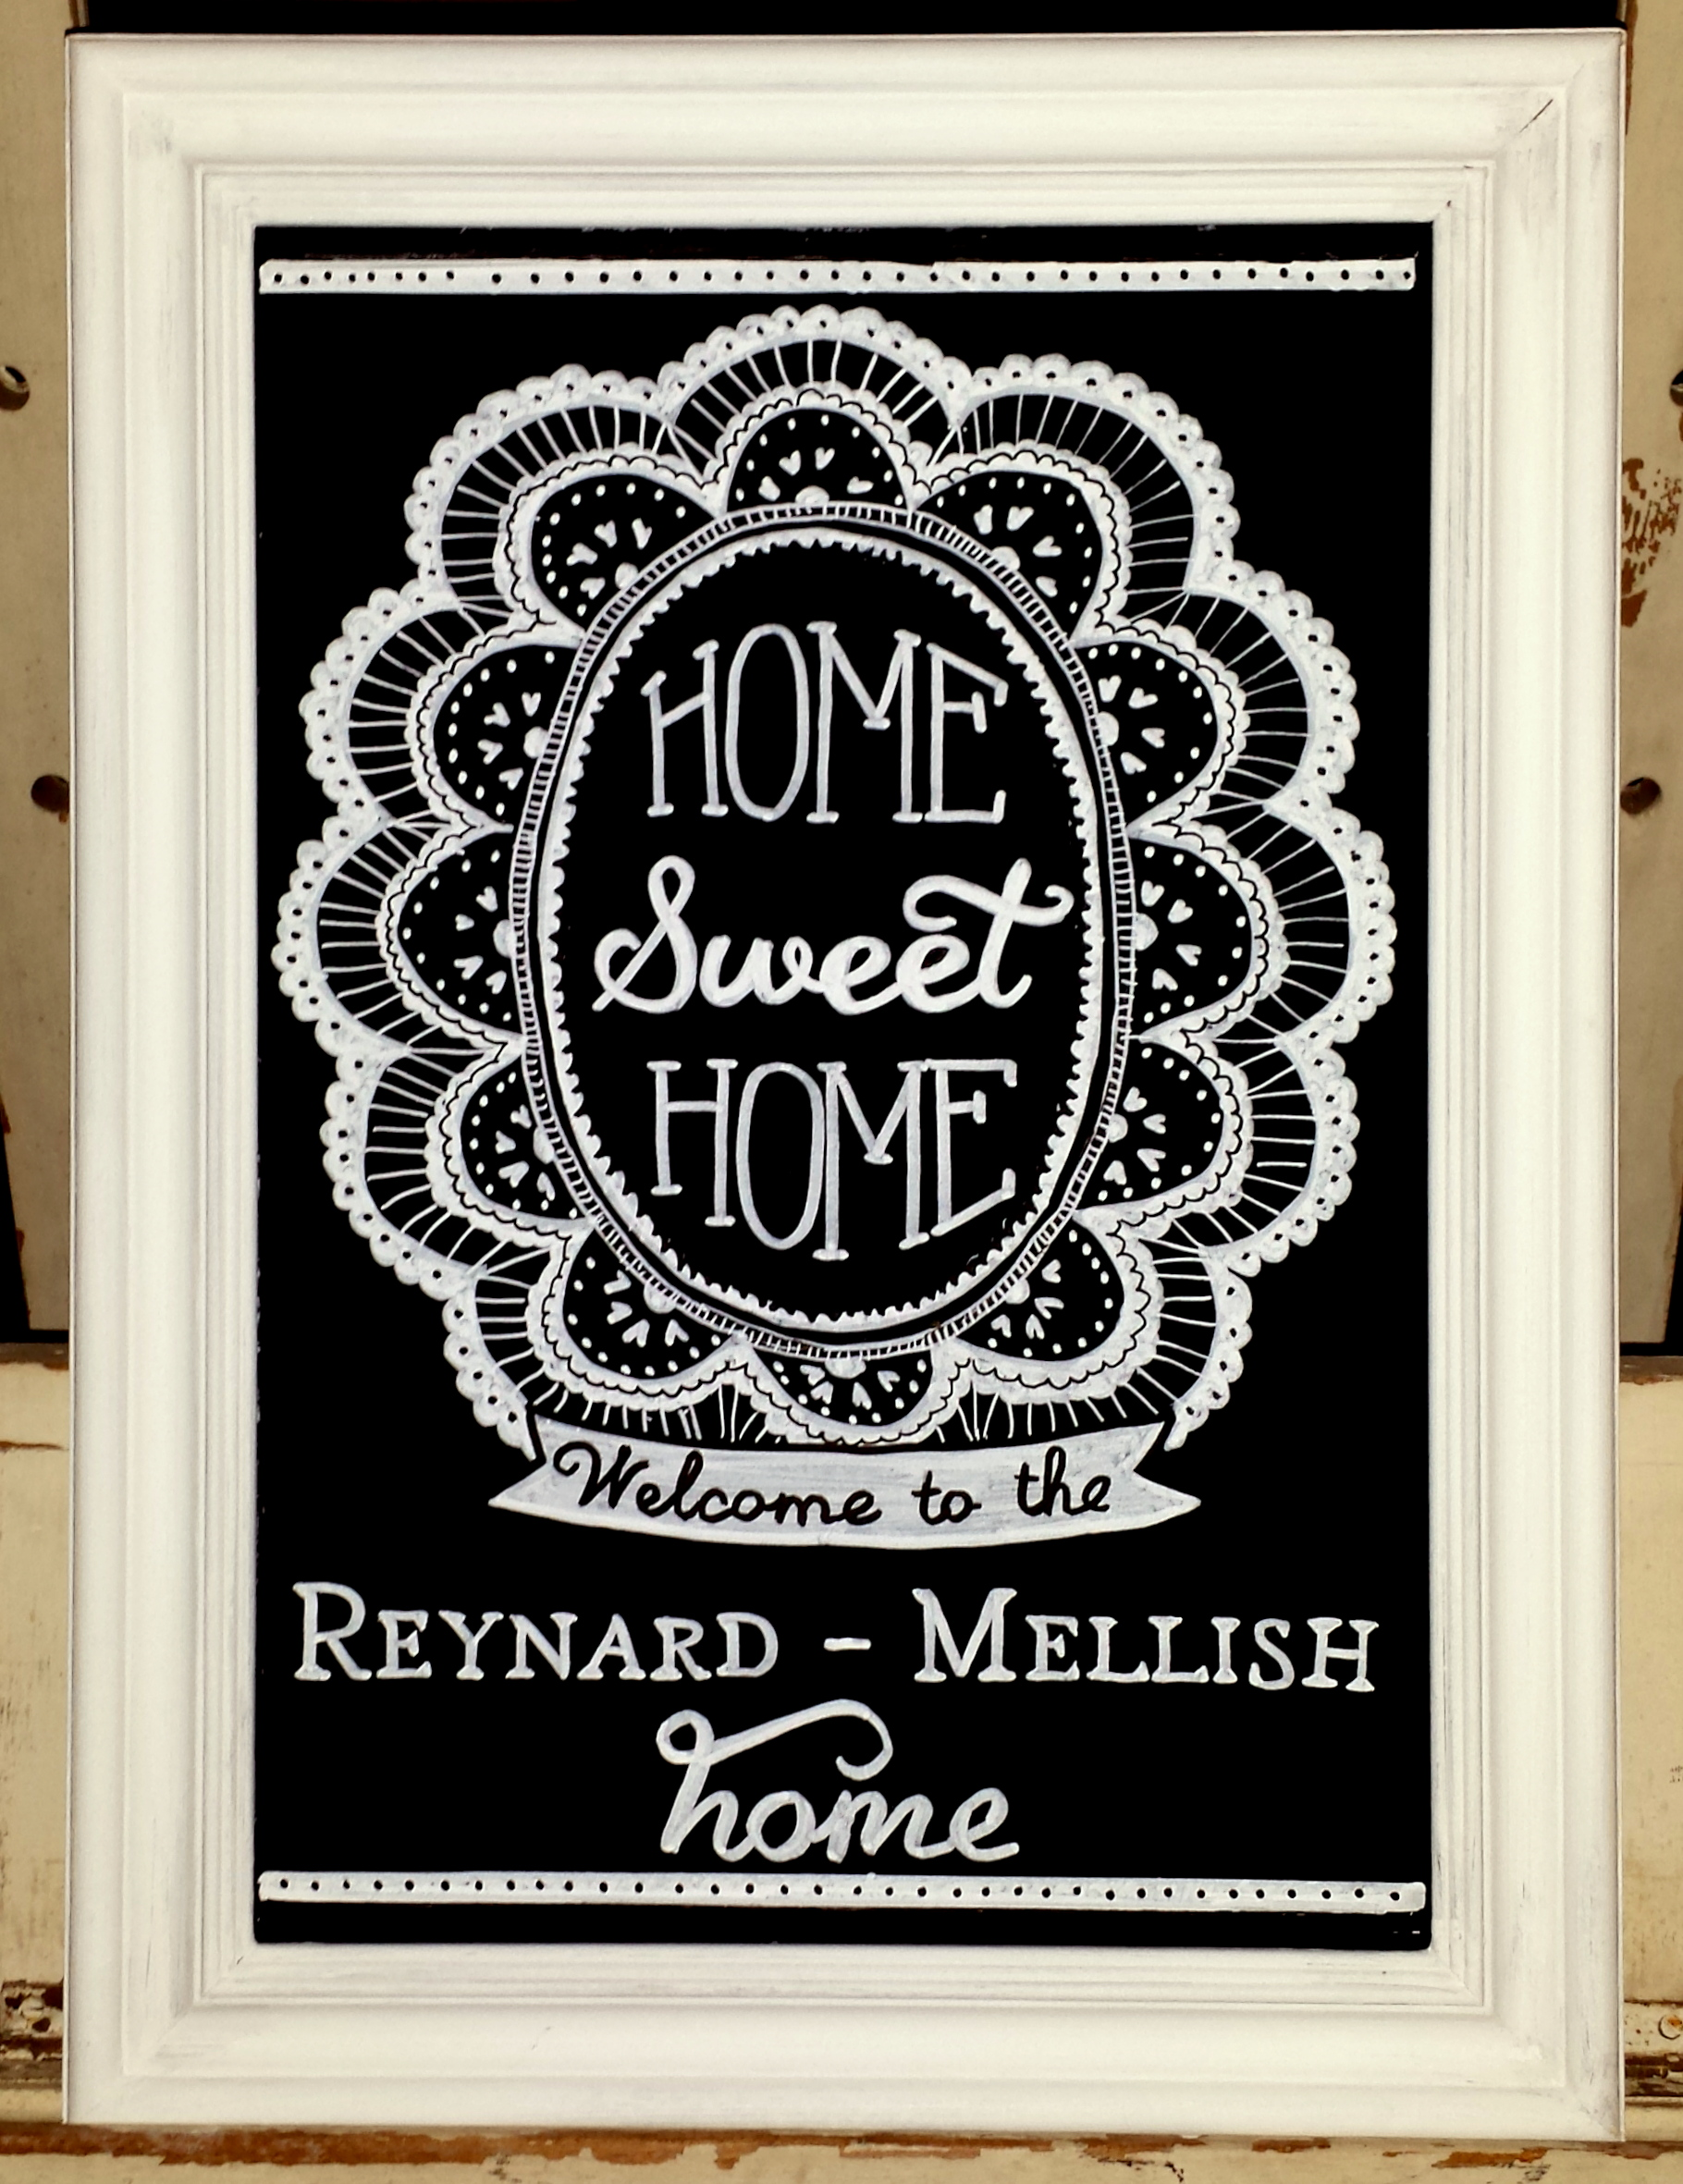 Reynard-Mellish Gift Chalk Art